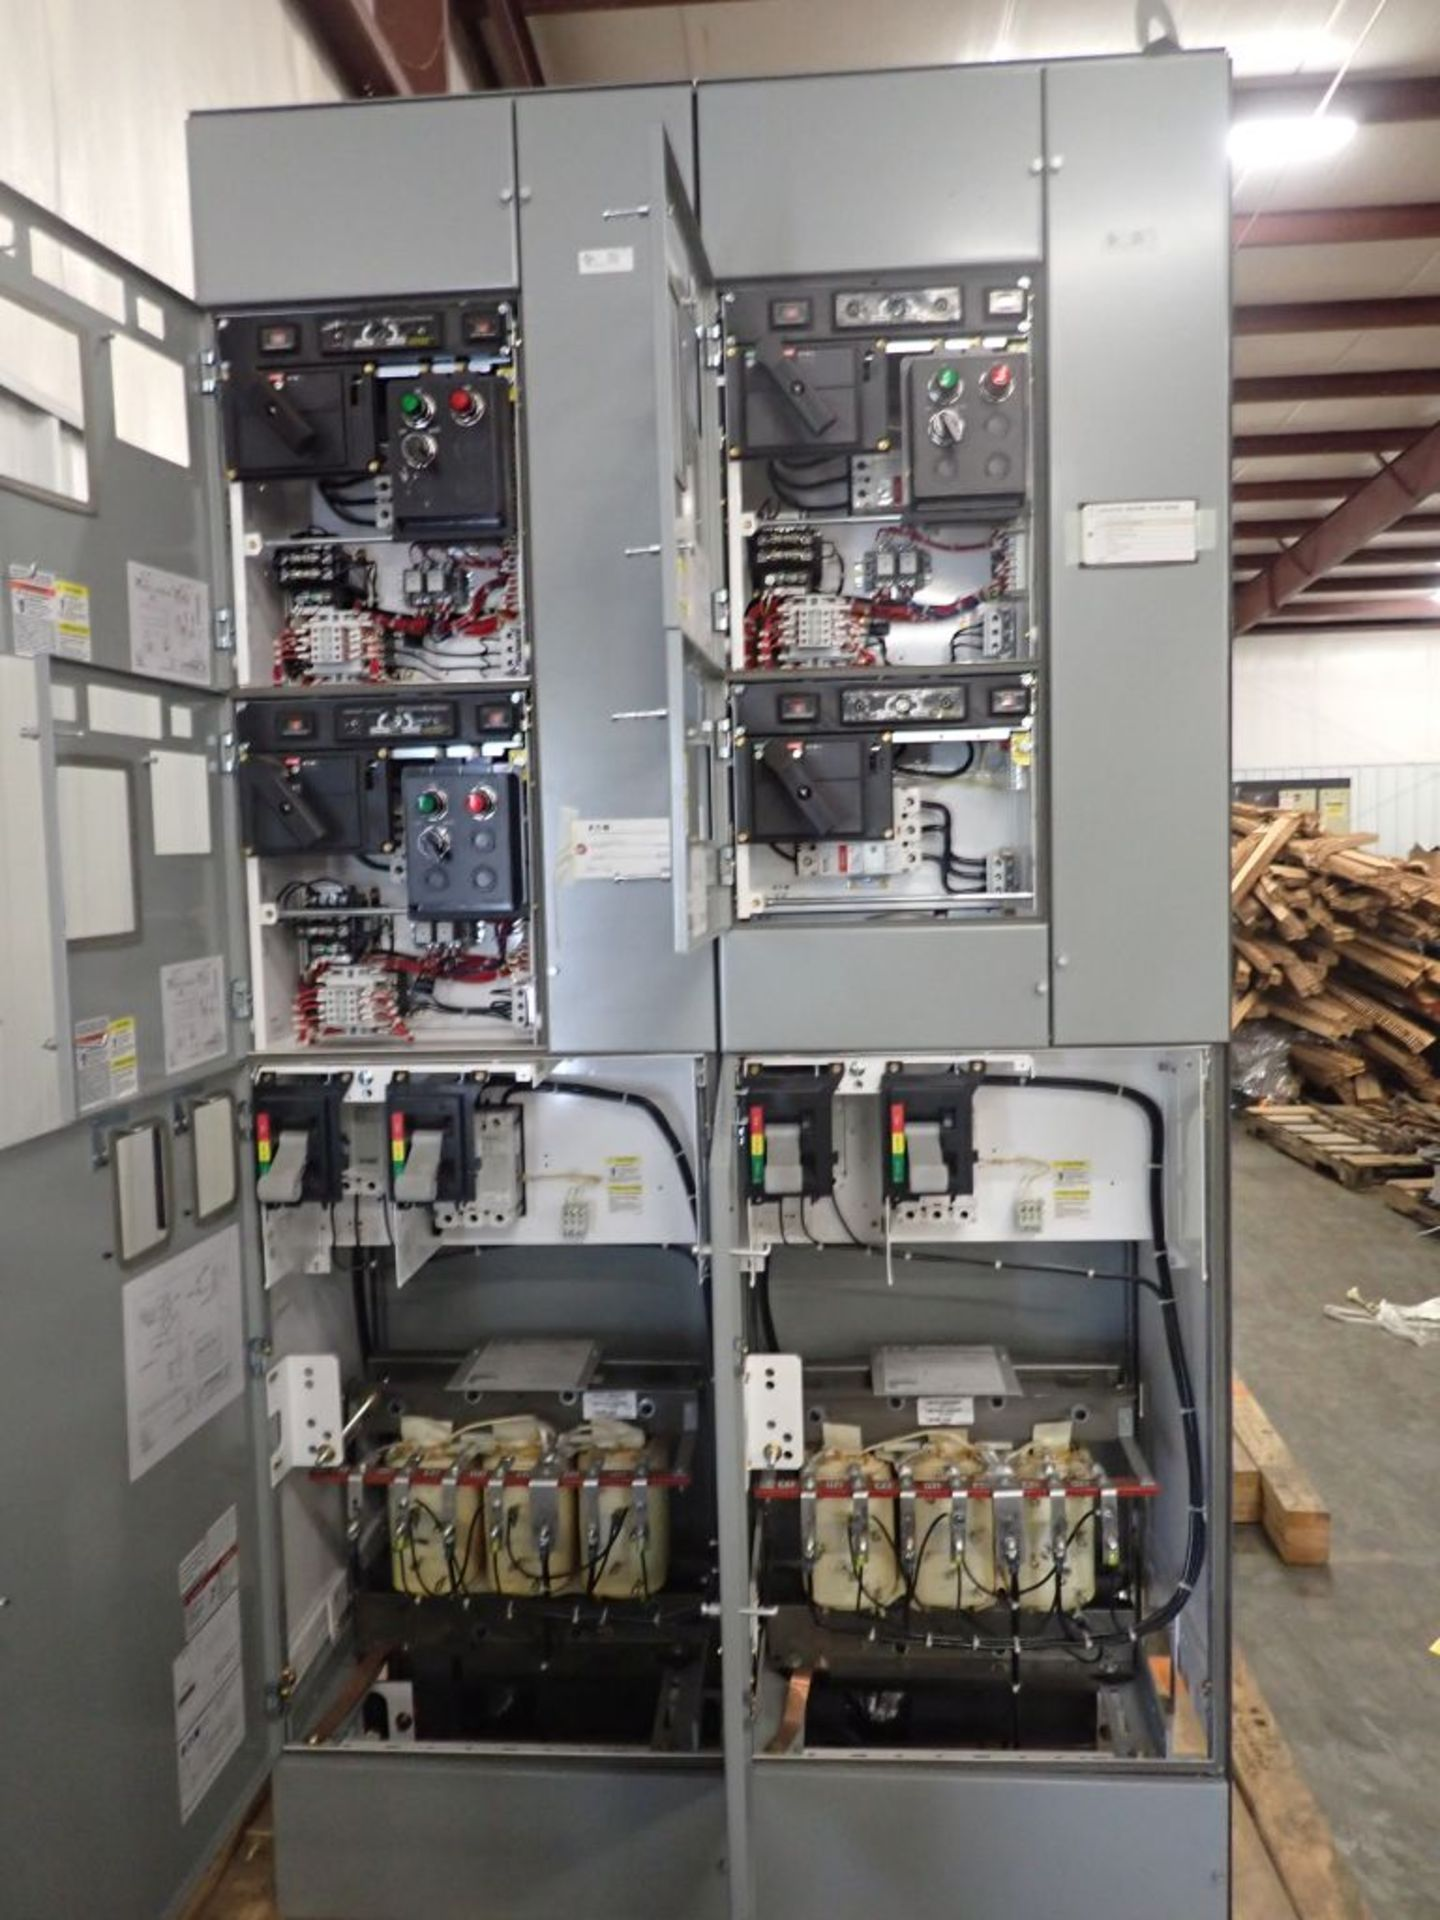 Eaton Freedom 2100 Series Motor Control Center | (2) F208-30A; (1) F208-40A; (1) FDRB-50A; (2) - Image 5 of 37